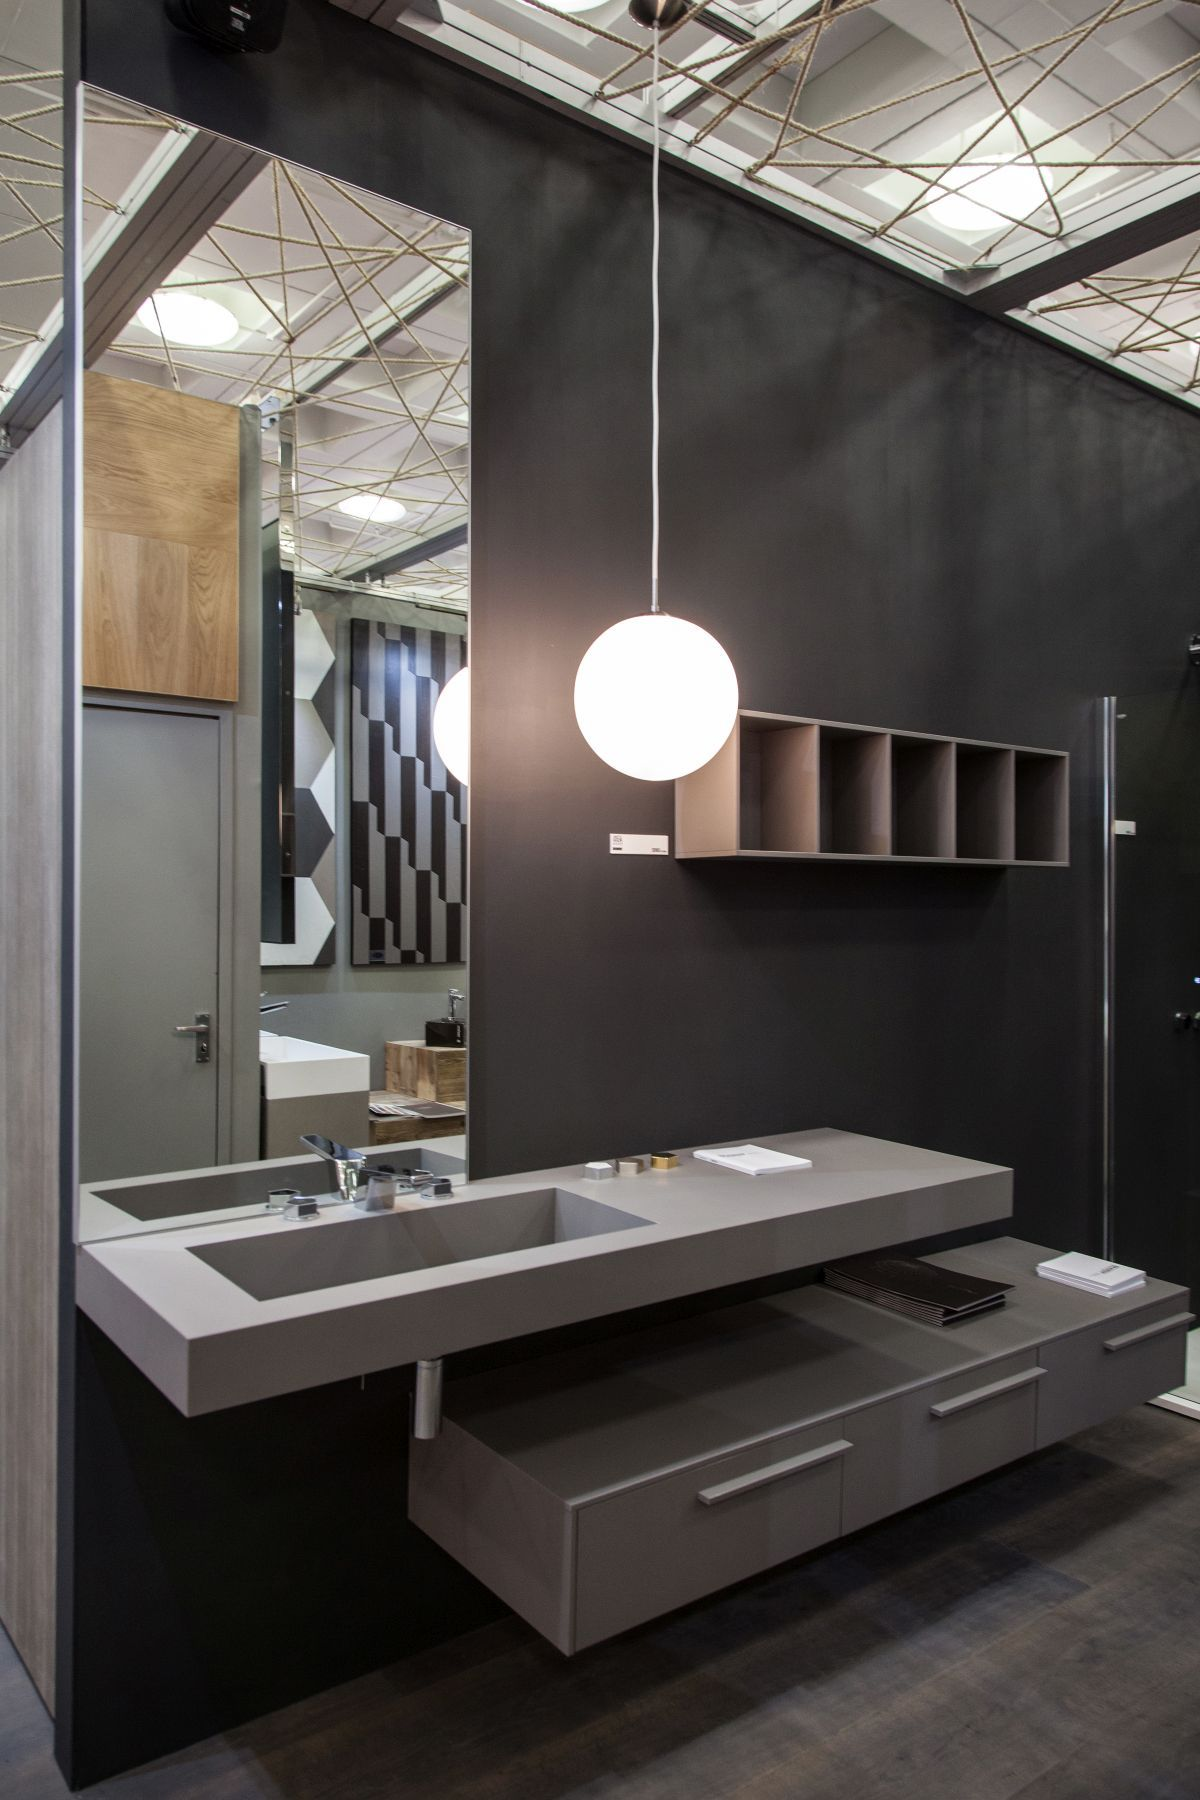 21 Bathroom Decor Ideas That Bring New Concepts To Light